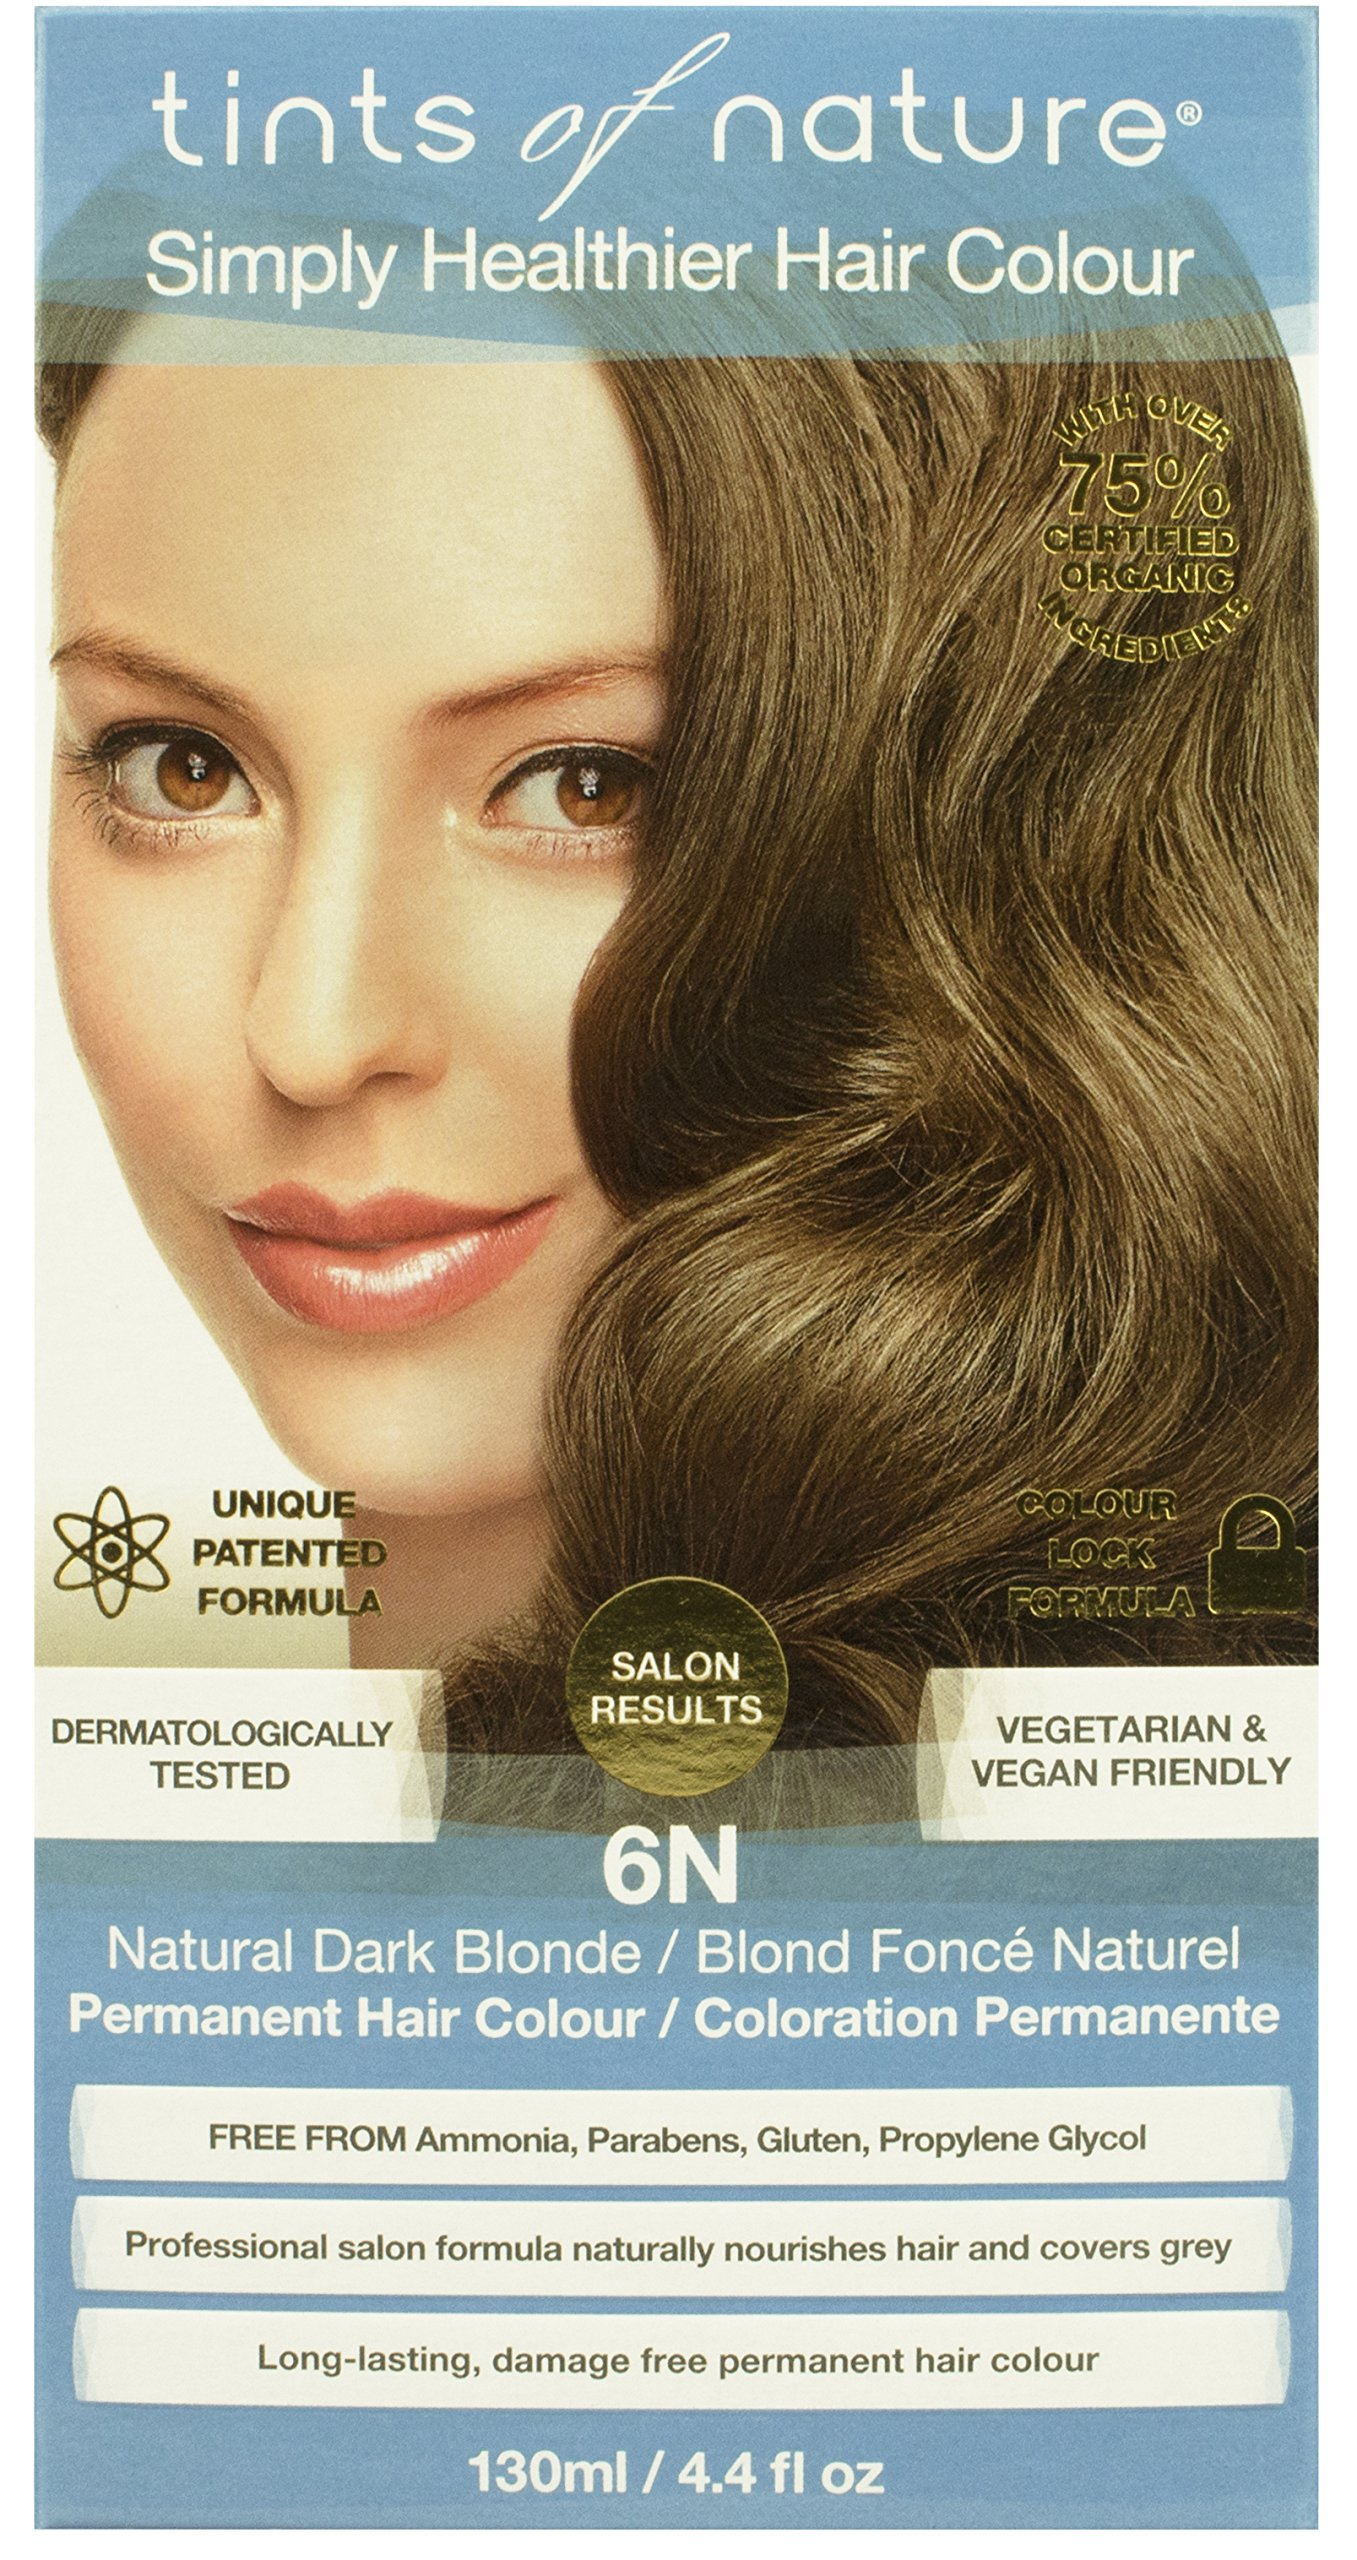 amazon com  tints of nature hair clr med blnde nat 7n  0 2 pound  health  u0026 personal care